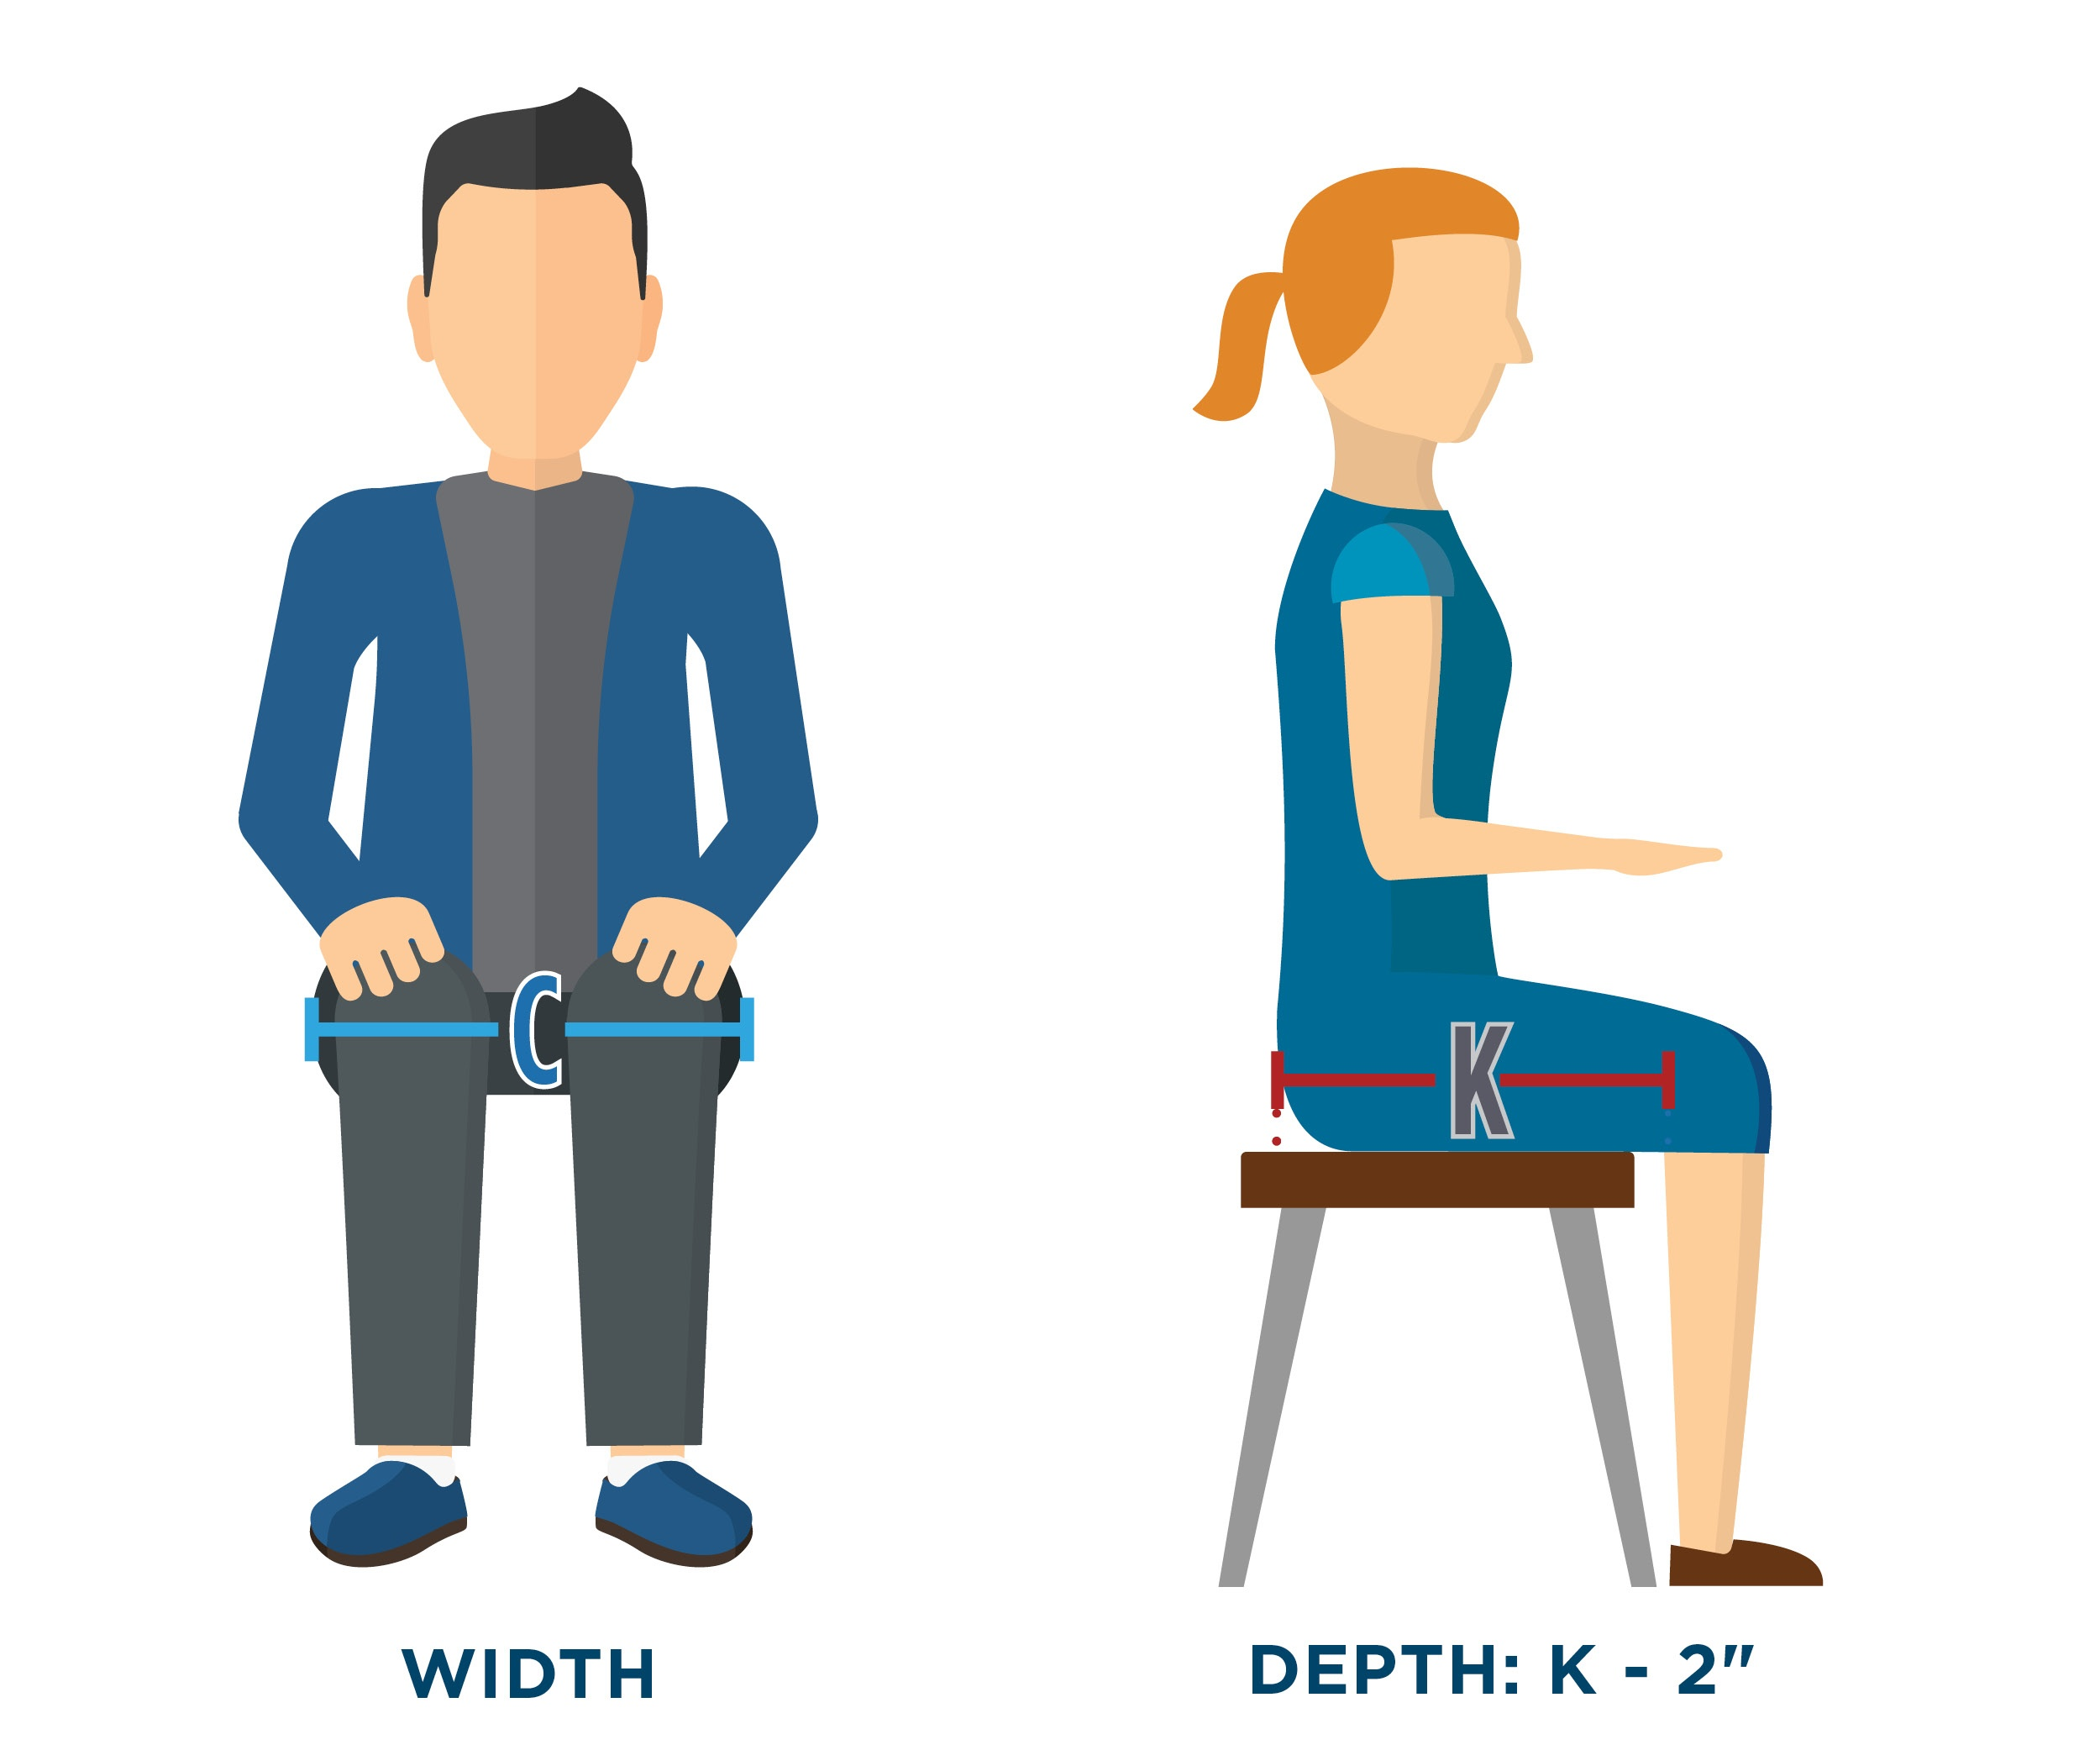 Wheelchair_Seat_Measuring_Guide - Seat Dimension